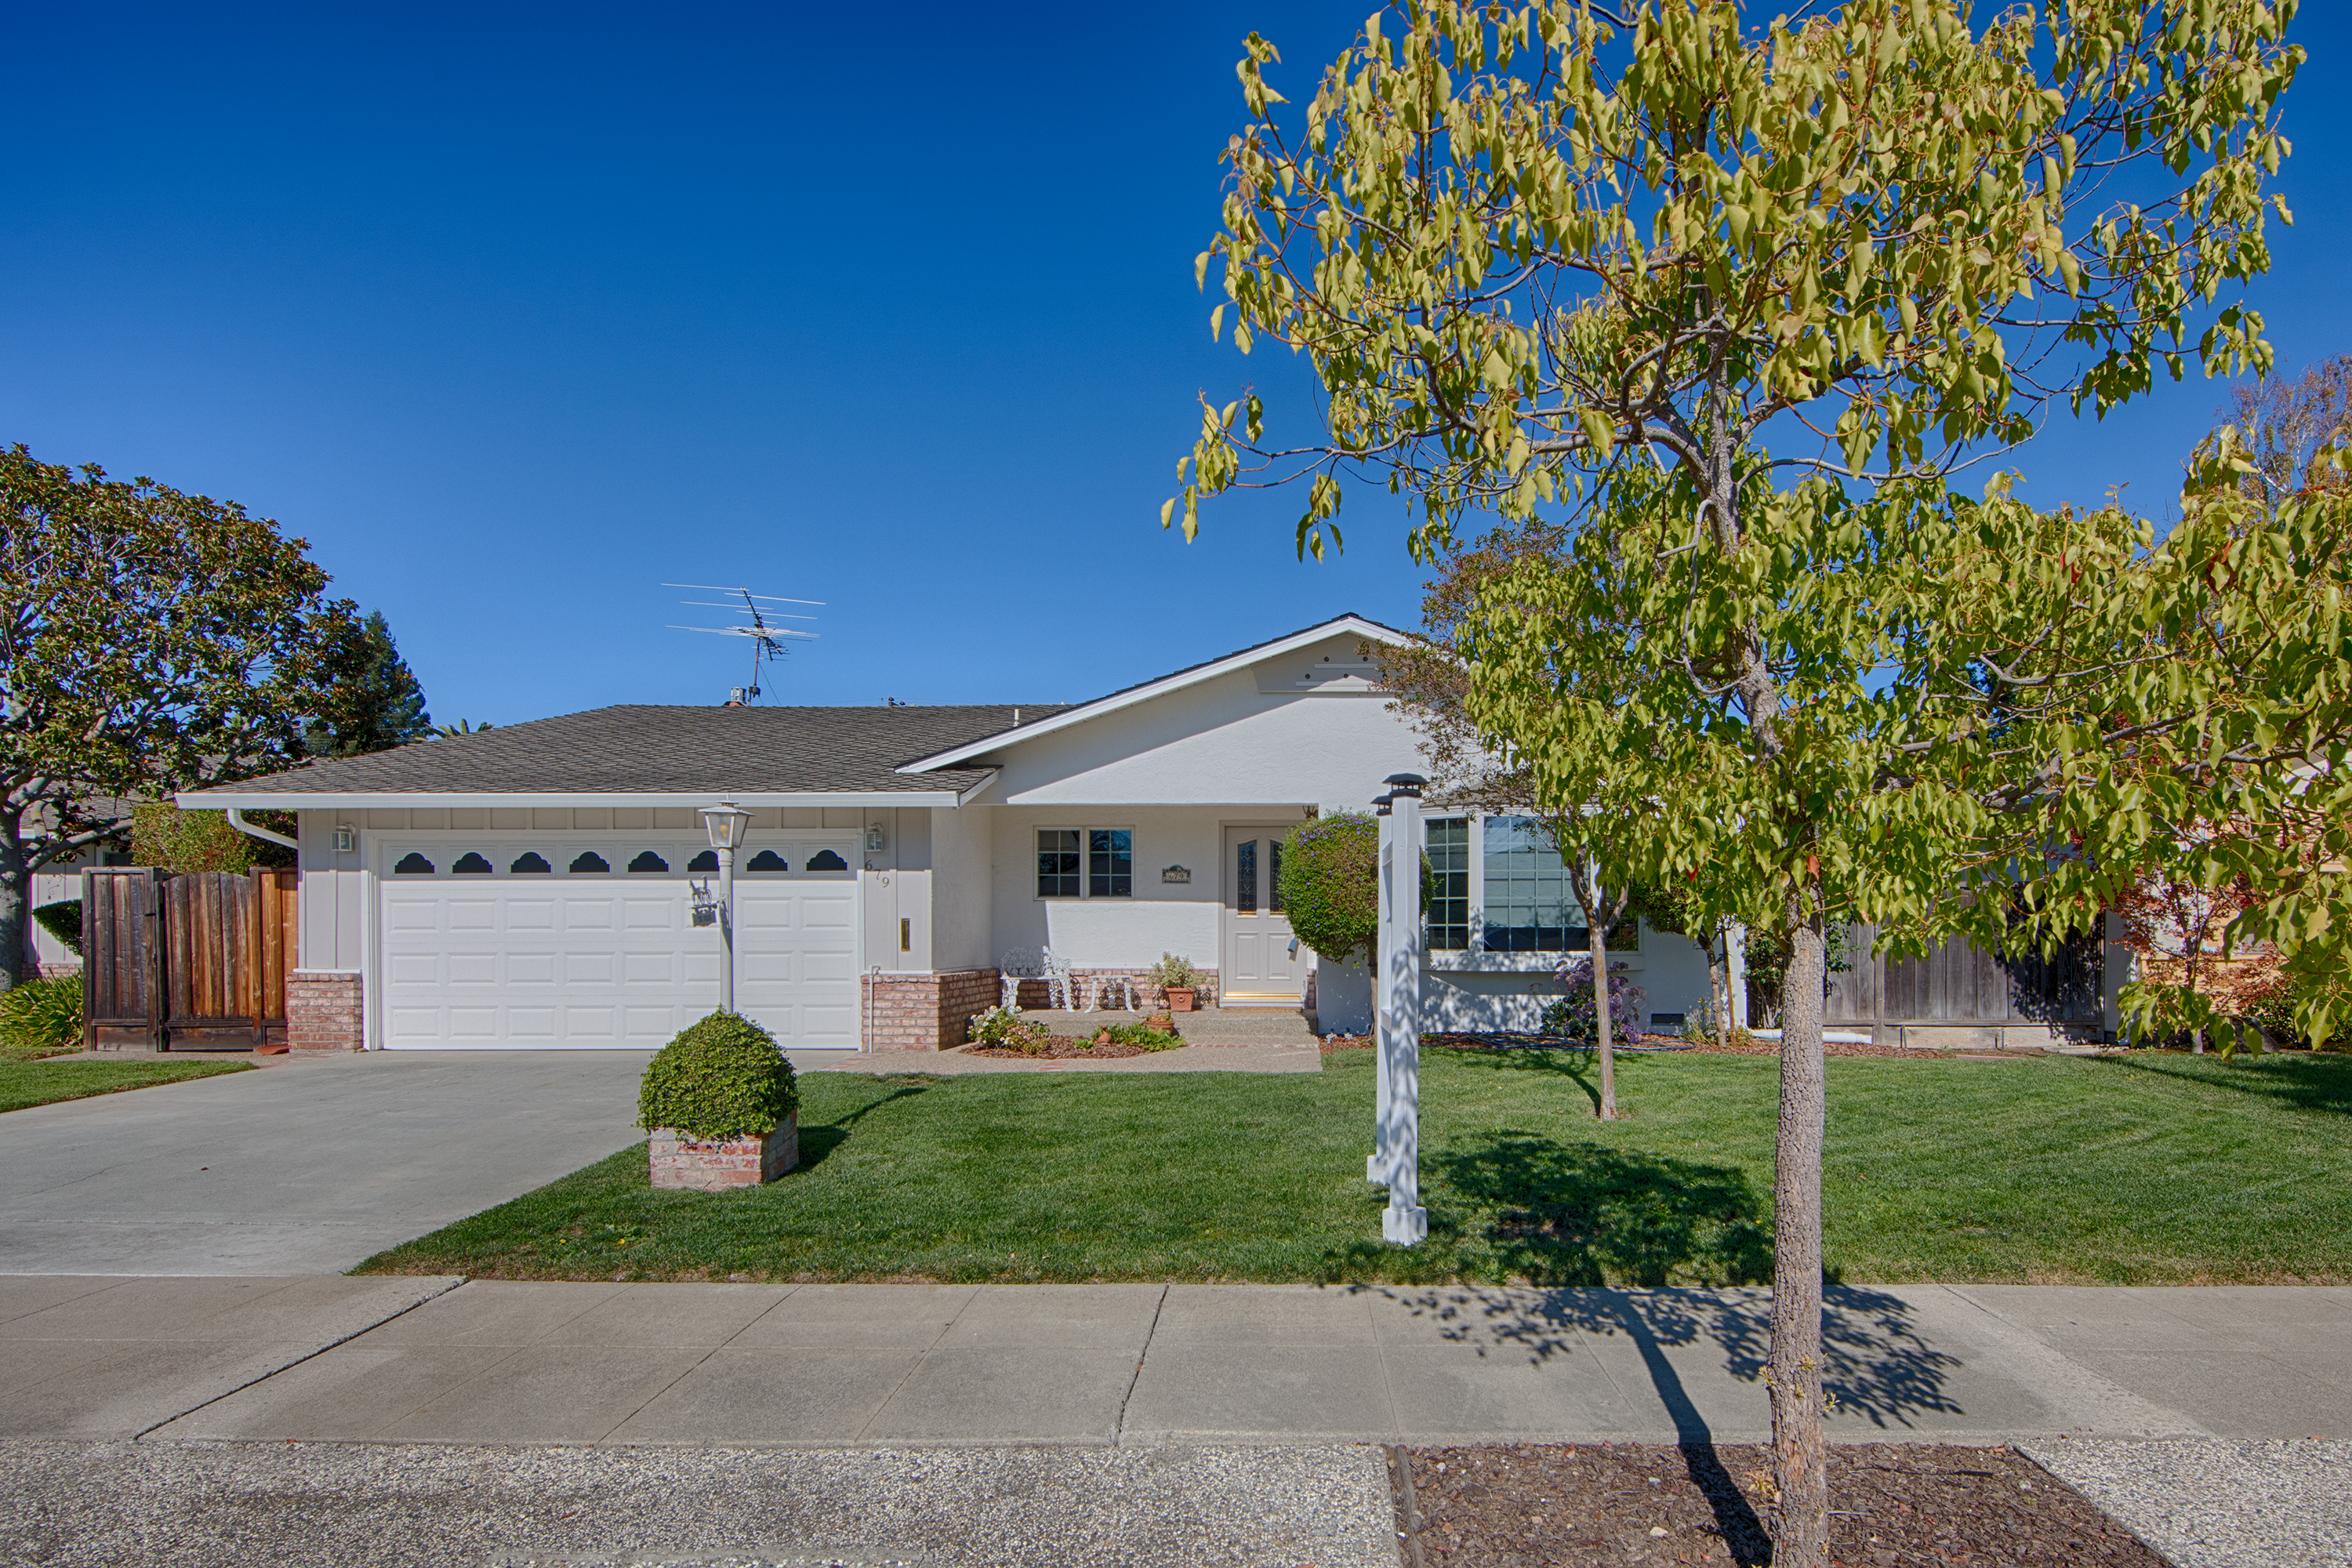 679 Durshire Way, Sunnyvale 94087 - Durshire Way 679